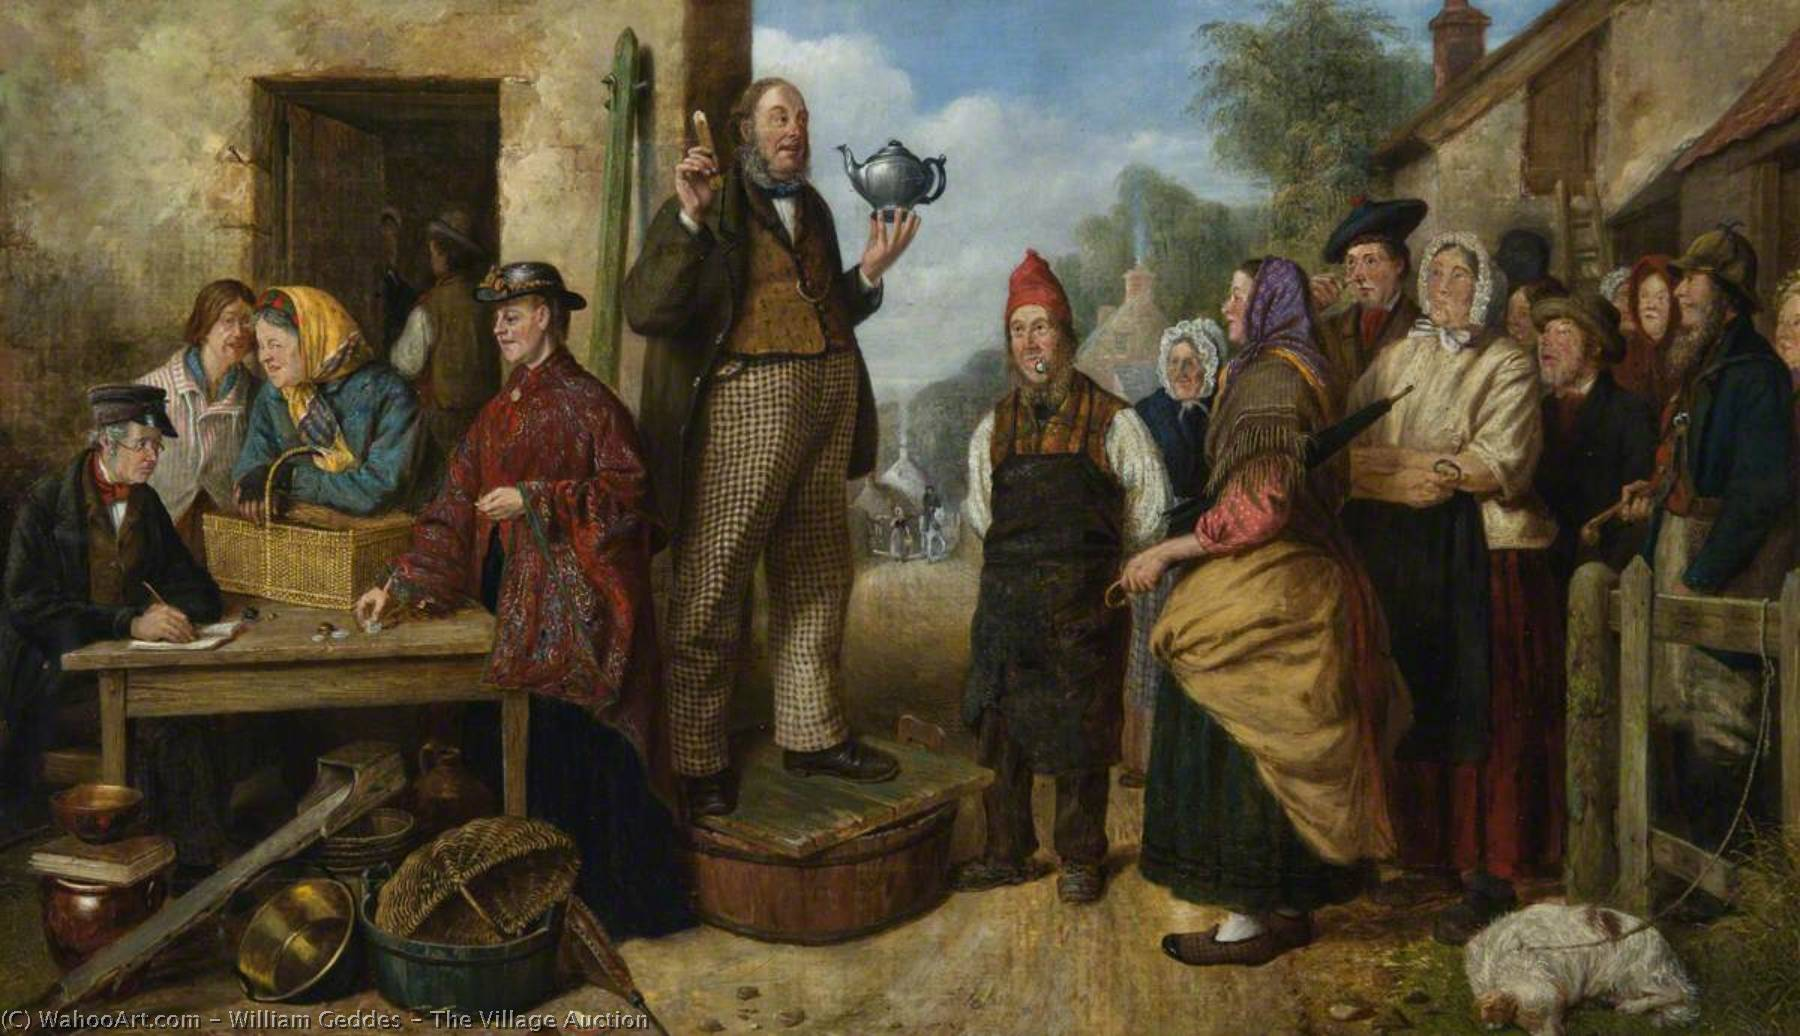 The Village Auction, 1868 by William Geddes | Paintings Reproductions William Geddes | WahooArt.com